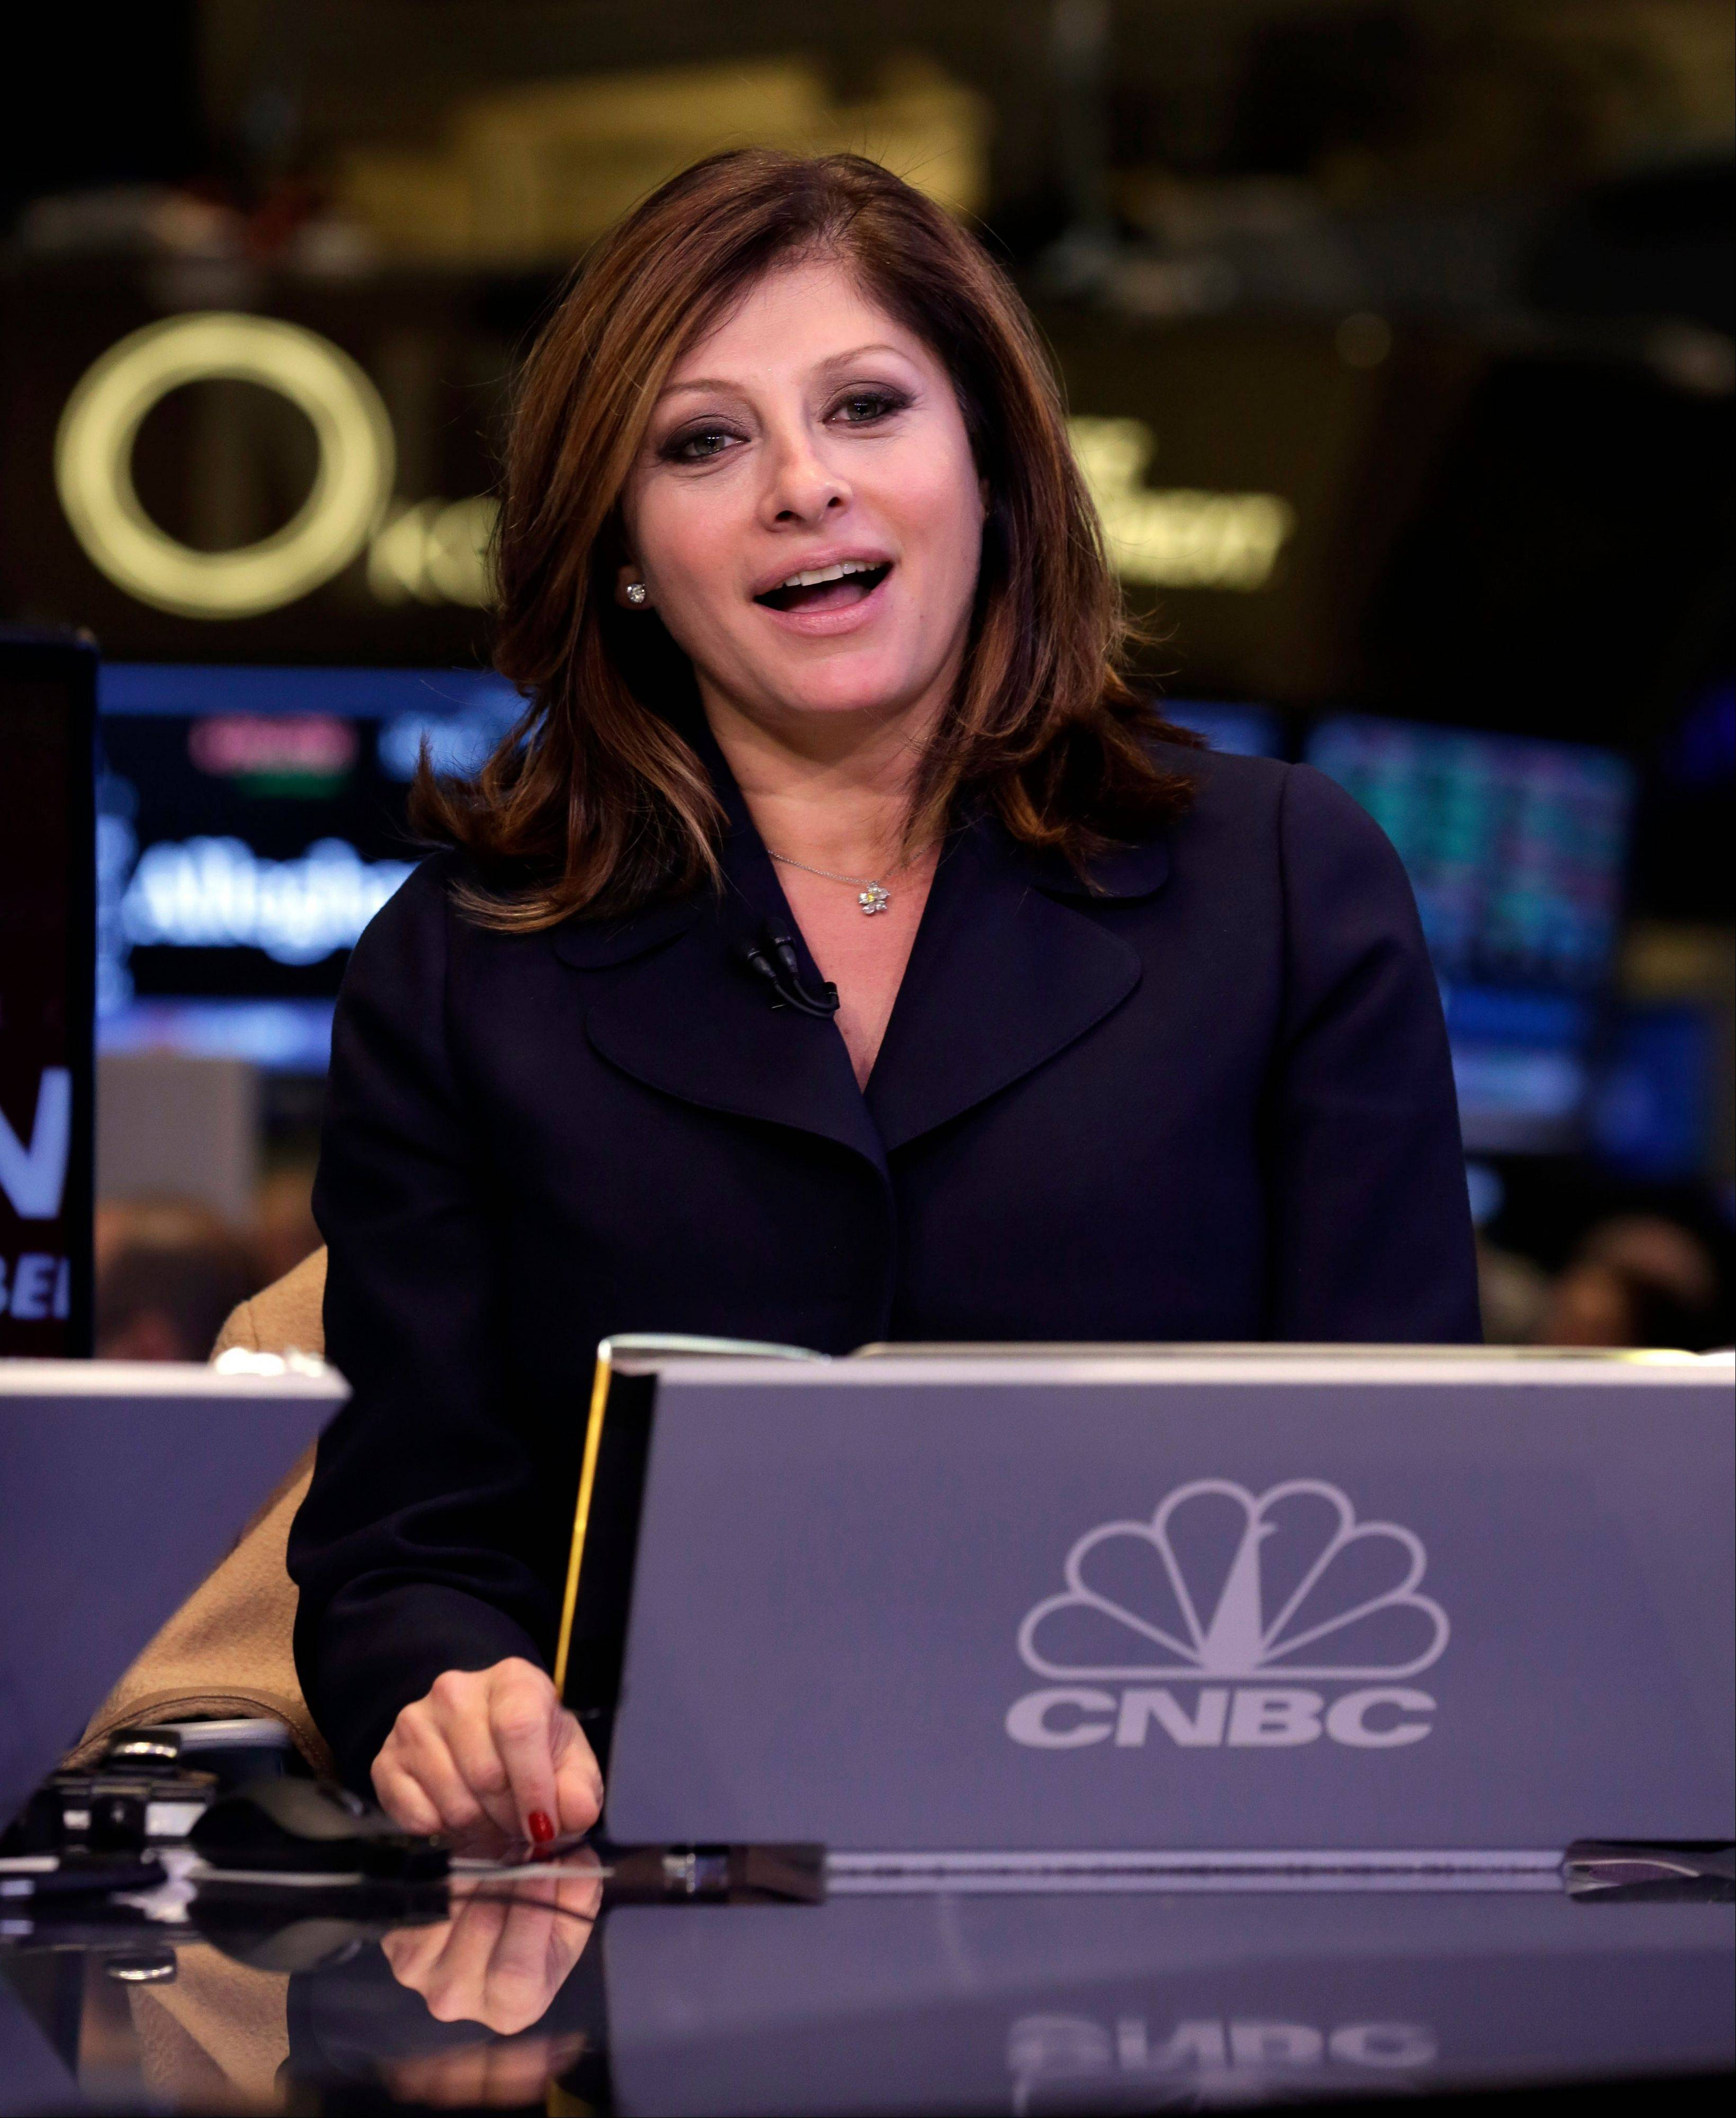 CNBC reporter Maria Bartiromo broadcasts Friday on her last day for the channel, on the floor of the New York Stock Exchange. Bartiromo is leaving the business news channel when her contract ends Nov. 24, concluding 20 years with CNBC.